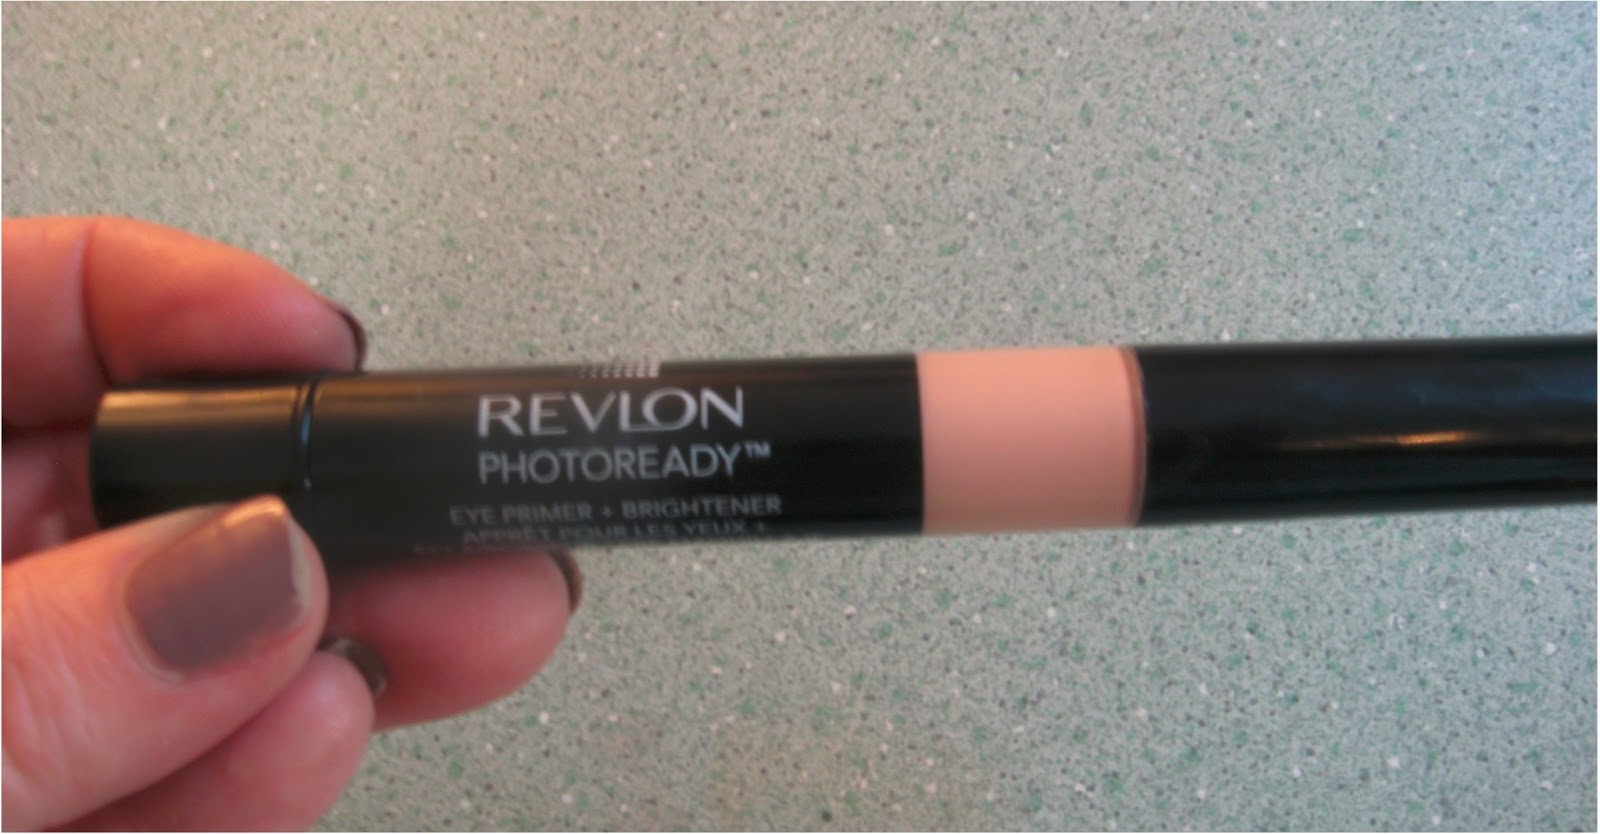 Photoready Eye Primer + Brightener by Revlon #13